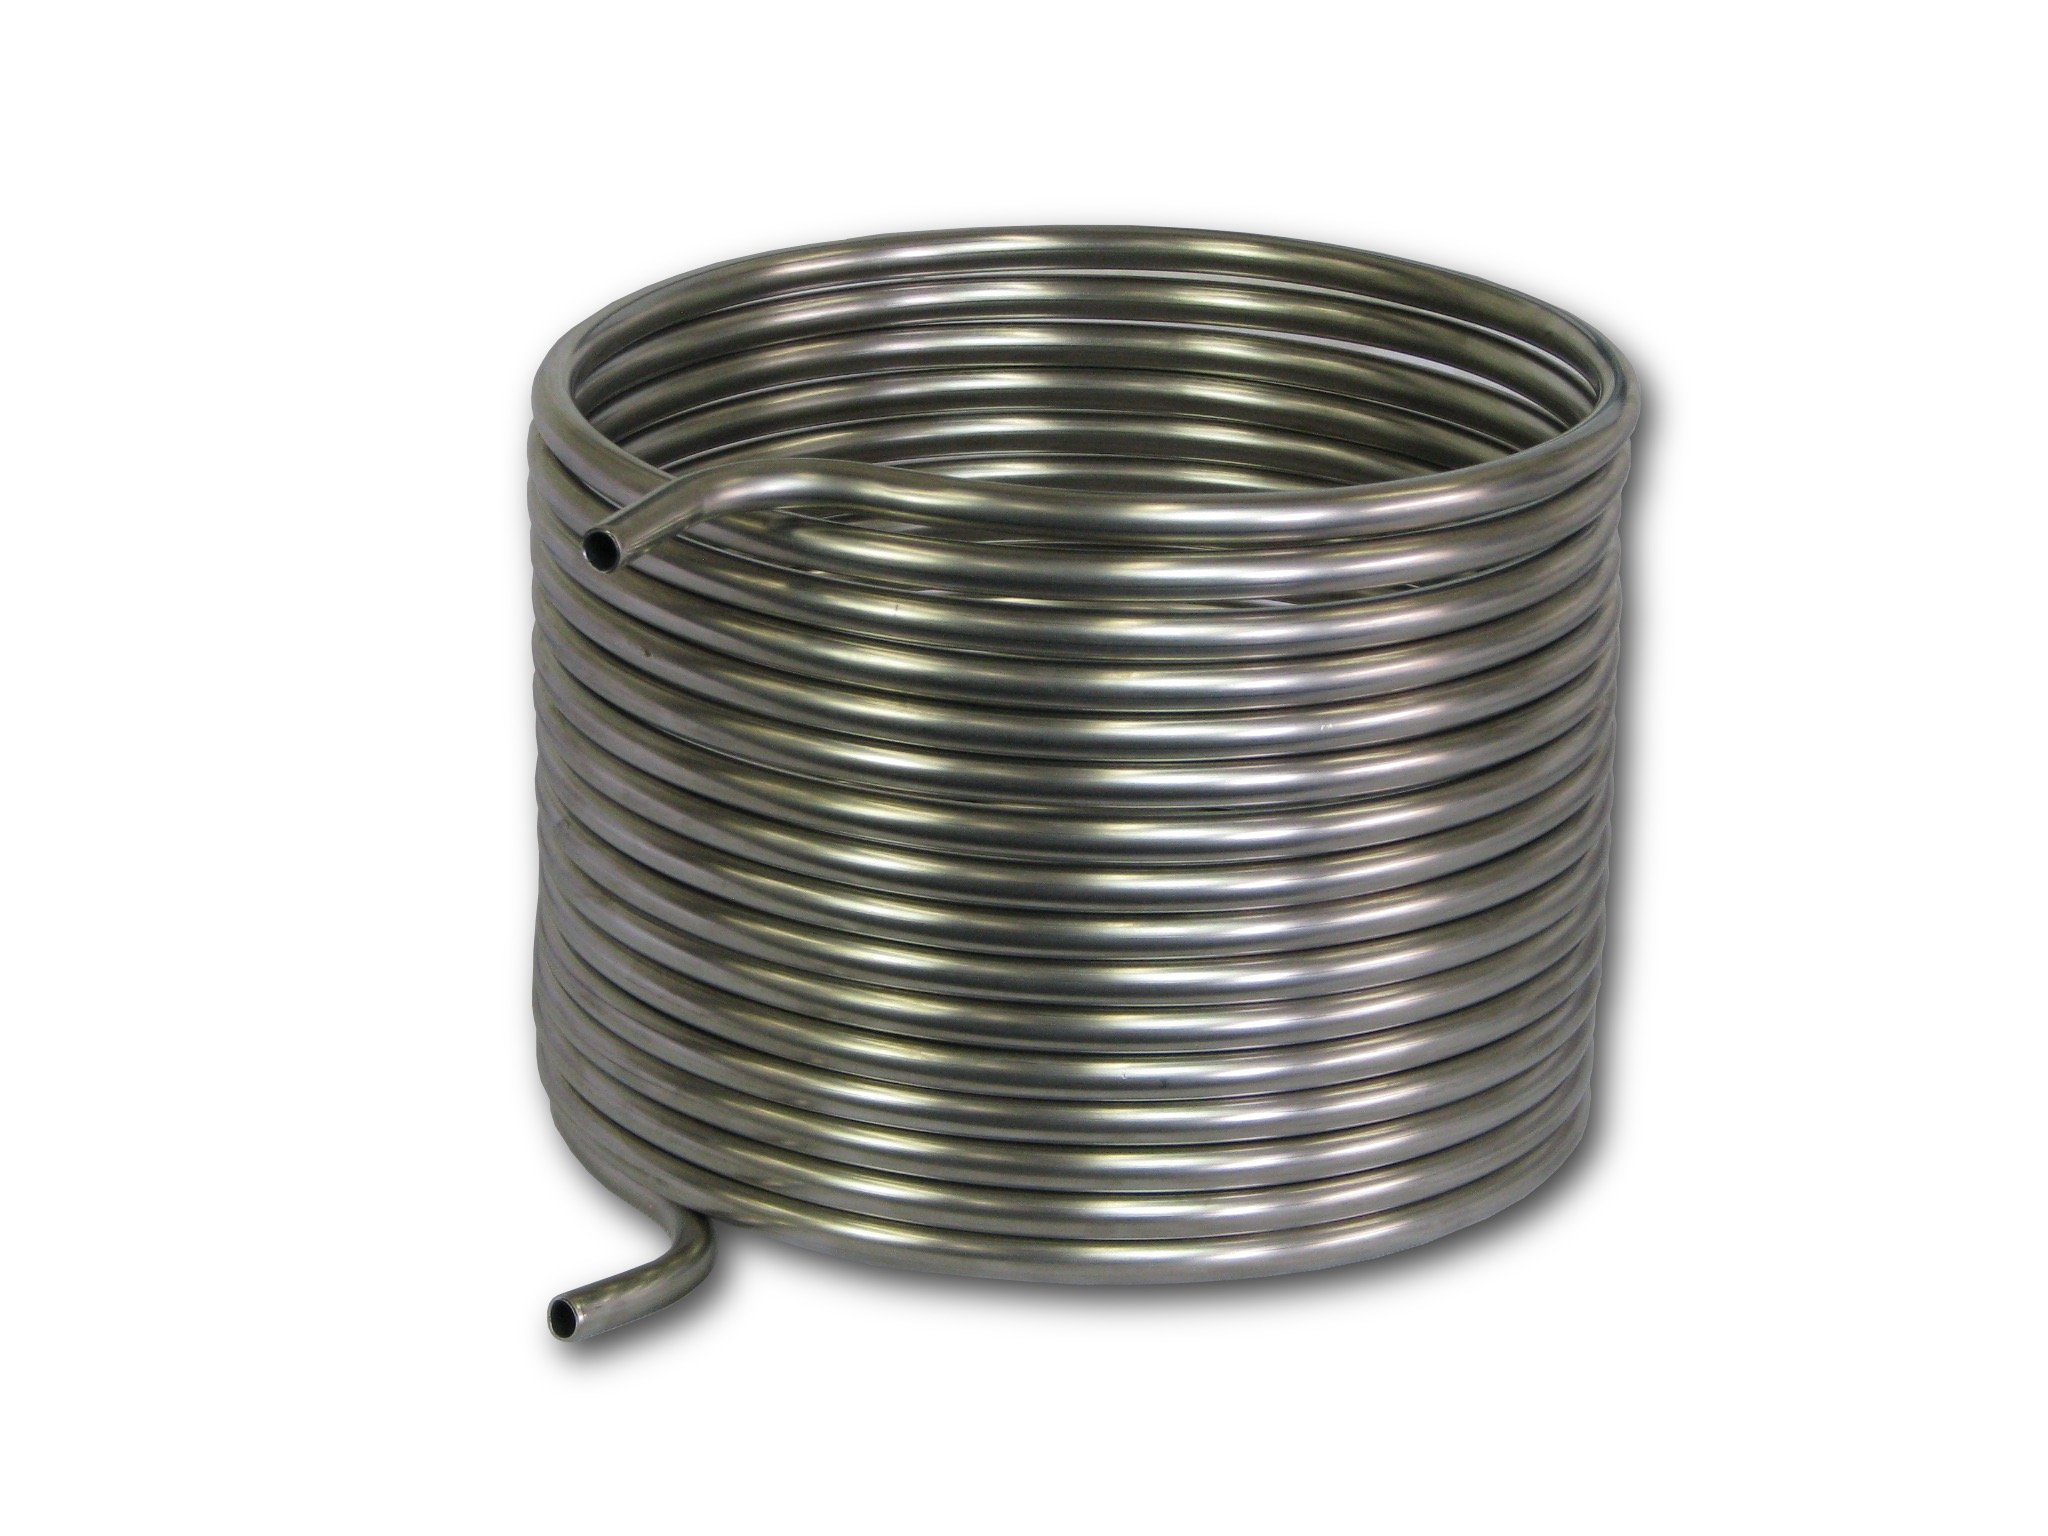 COLDBREAK 50' HERMS Coil, 1/2'' Stainless Steel, 12'' Diameter, Step Mash 10-20 Gallon Batches by Coldbreak